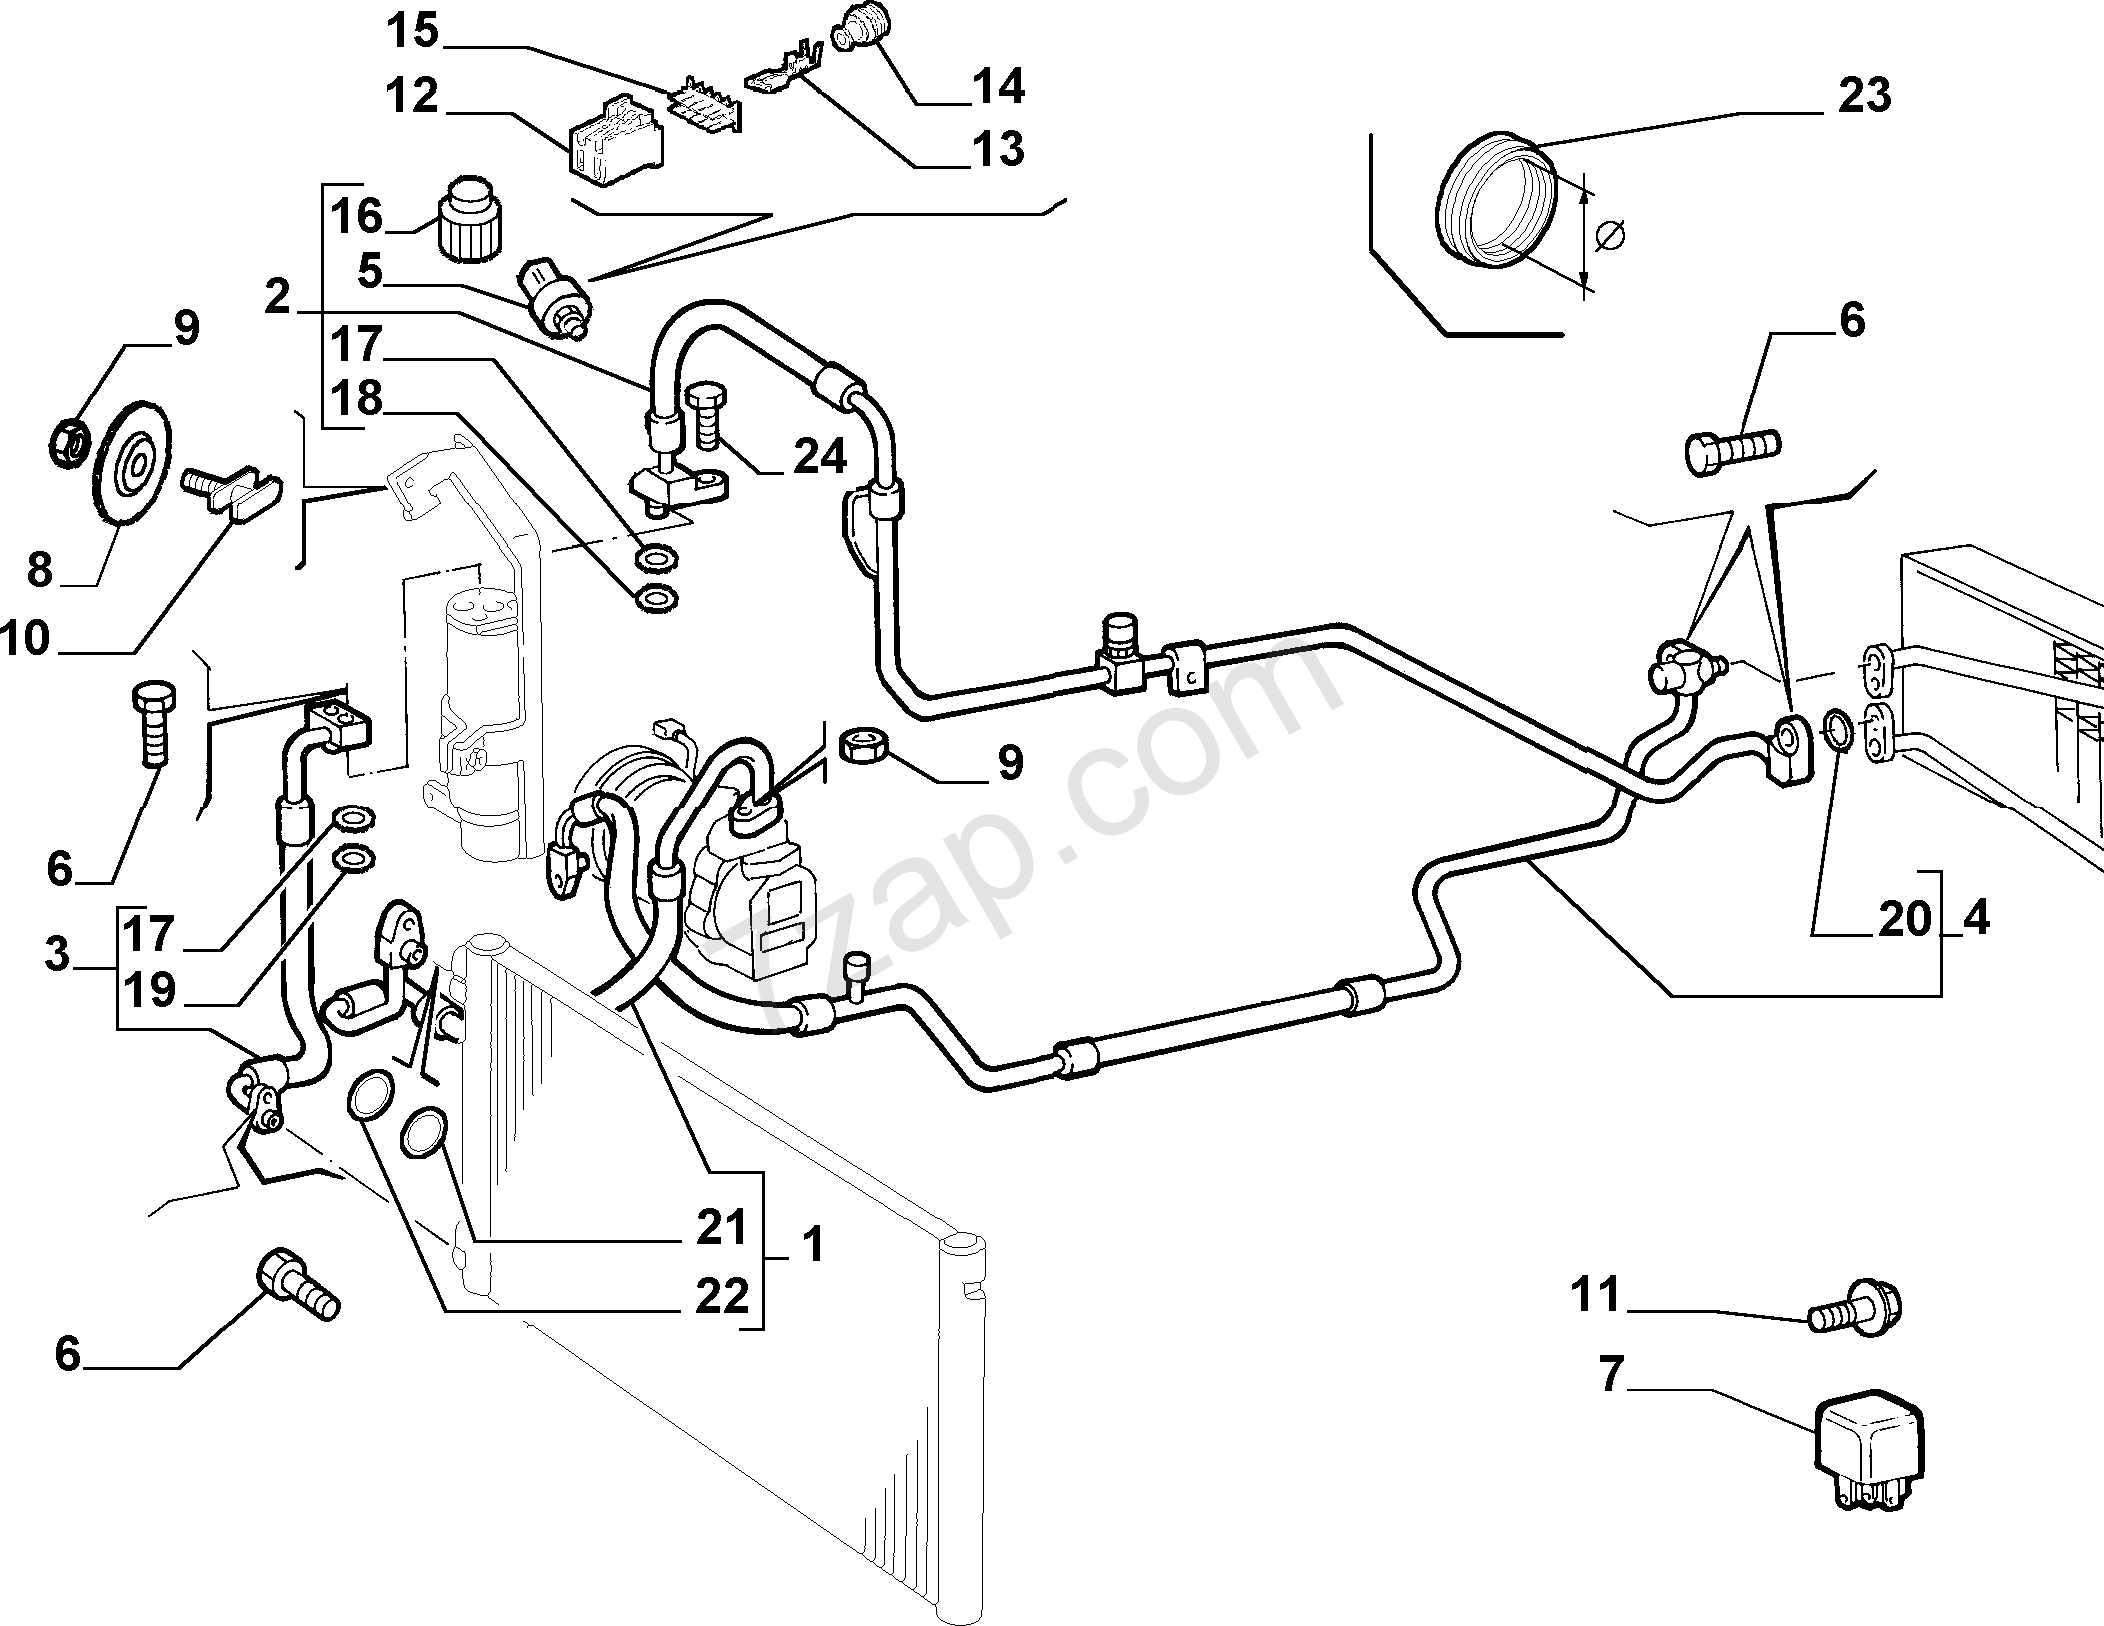 Fiat Punto Hose Diagram. Fiat. Auto Parts Catalog And Diagram